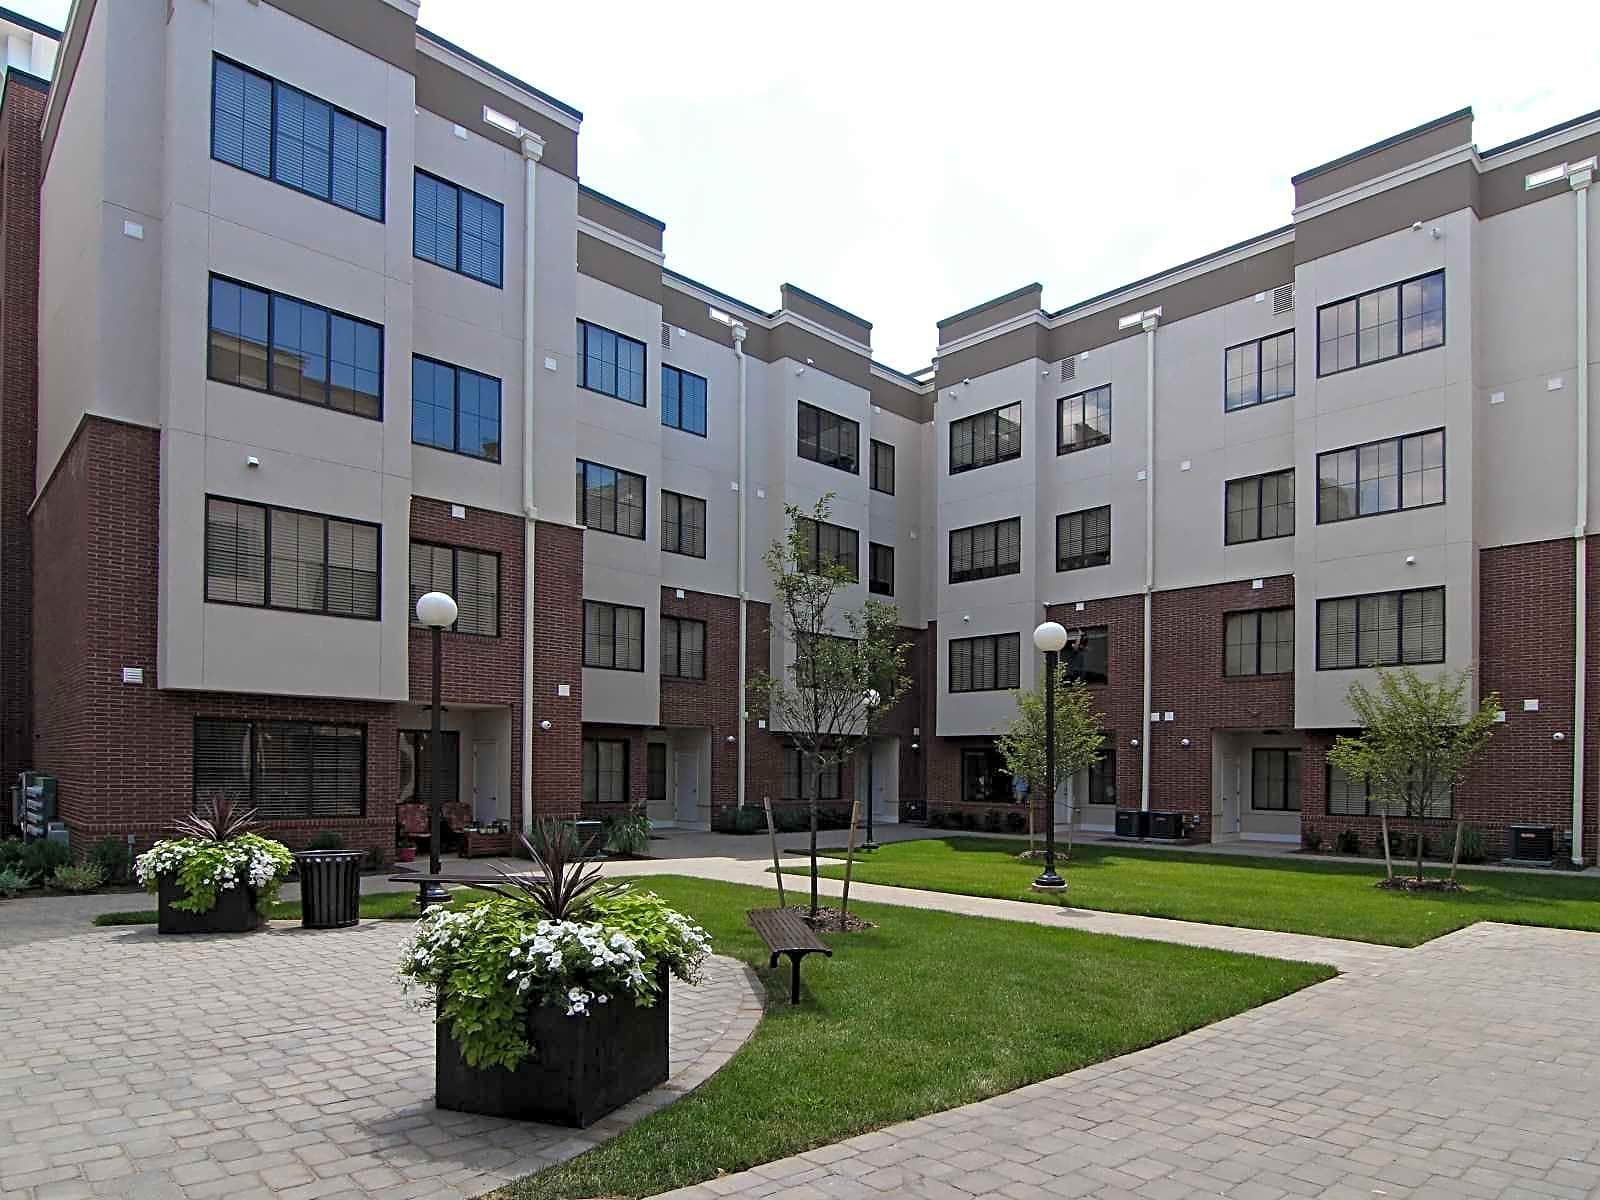 Lofts at middlesex apartments middlesex nj 08846 - 2 bedroom apartments in linden nj for 950 ...